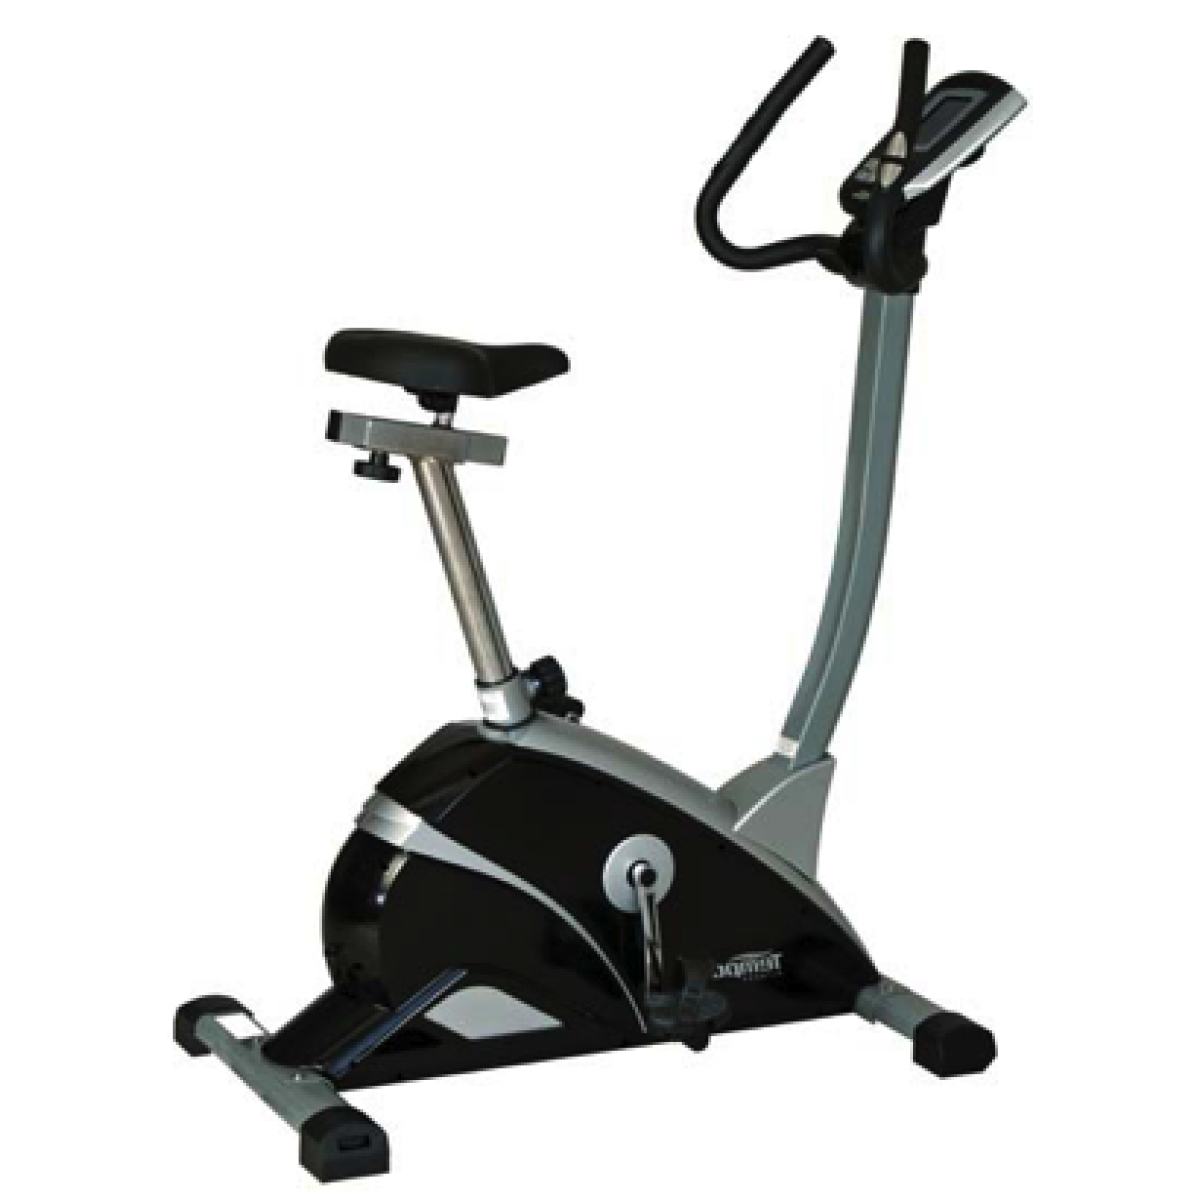 Bike png images pluspng. Exercise clipart transparent background